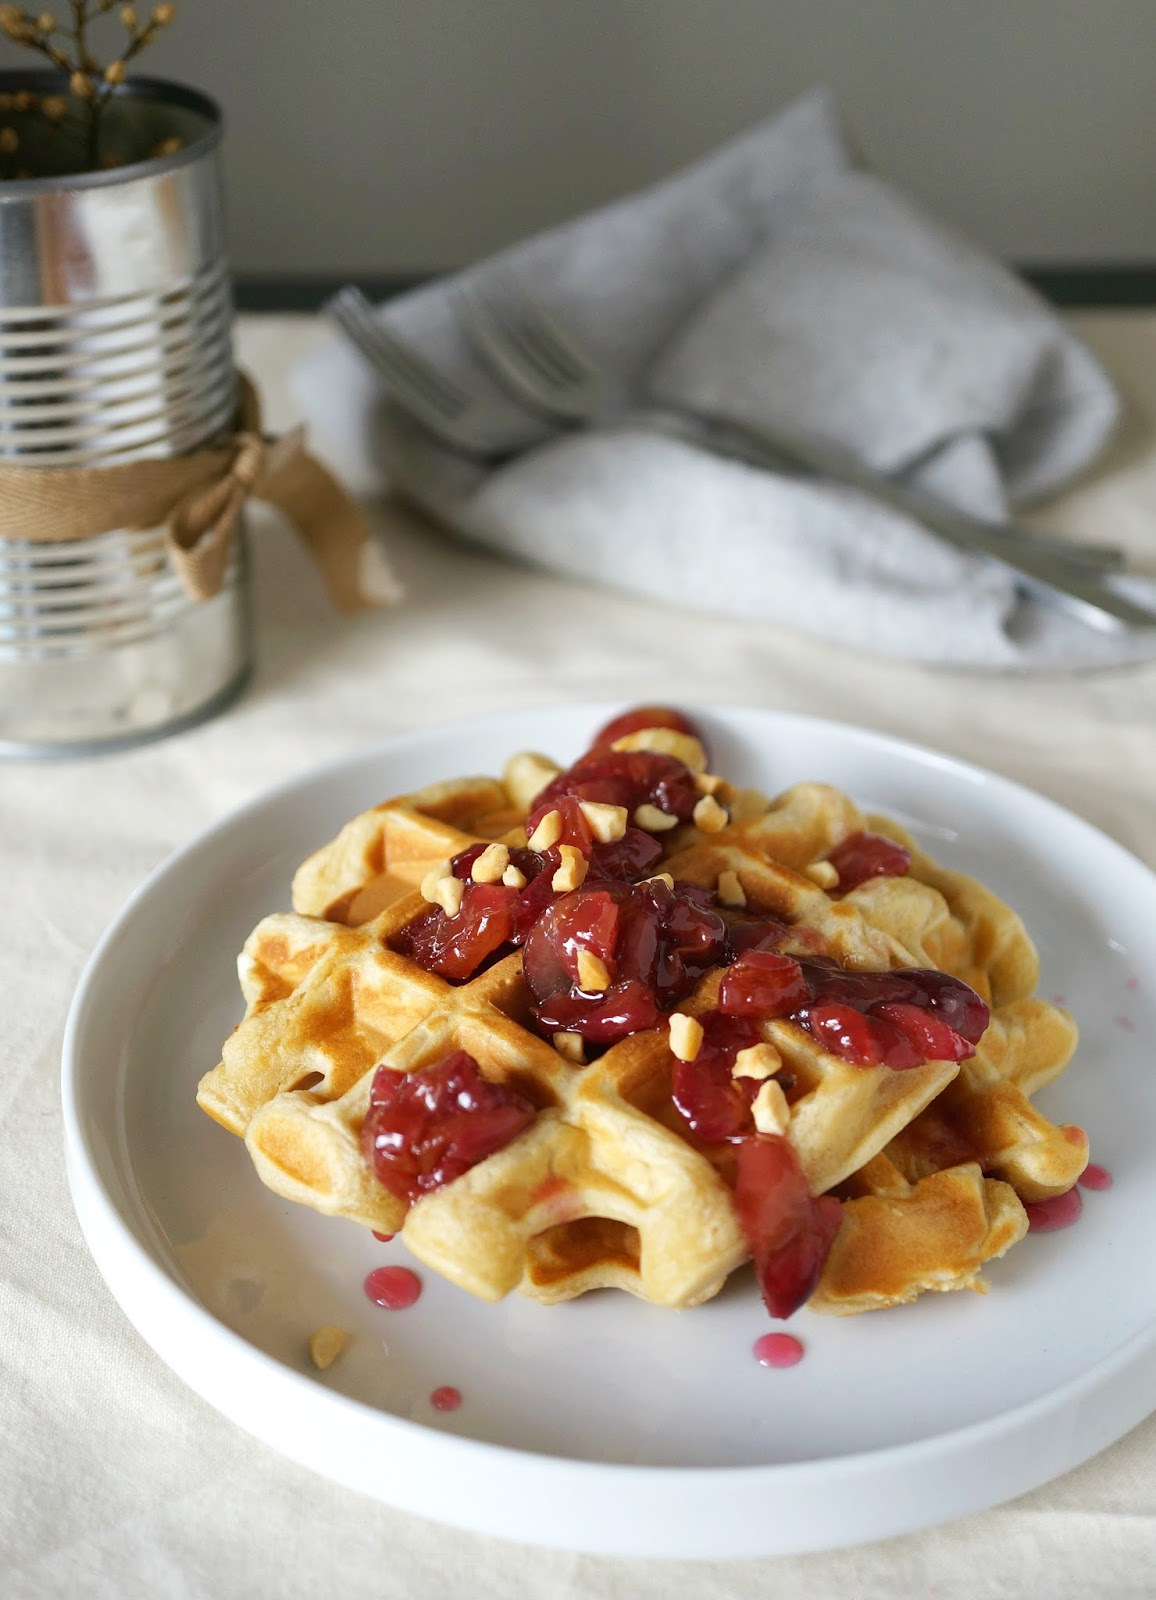 Peanut Butter and Jelly Waffles